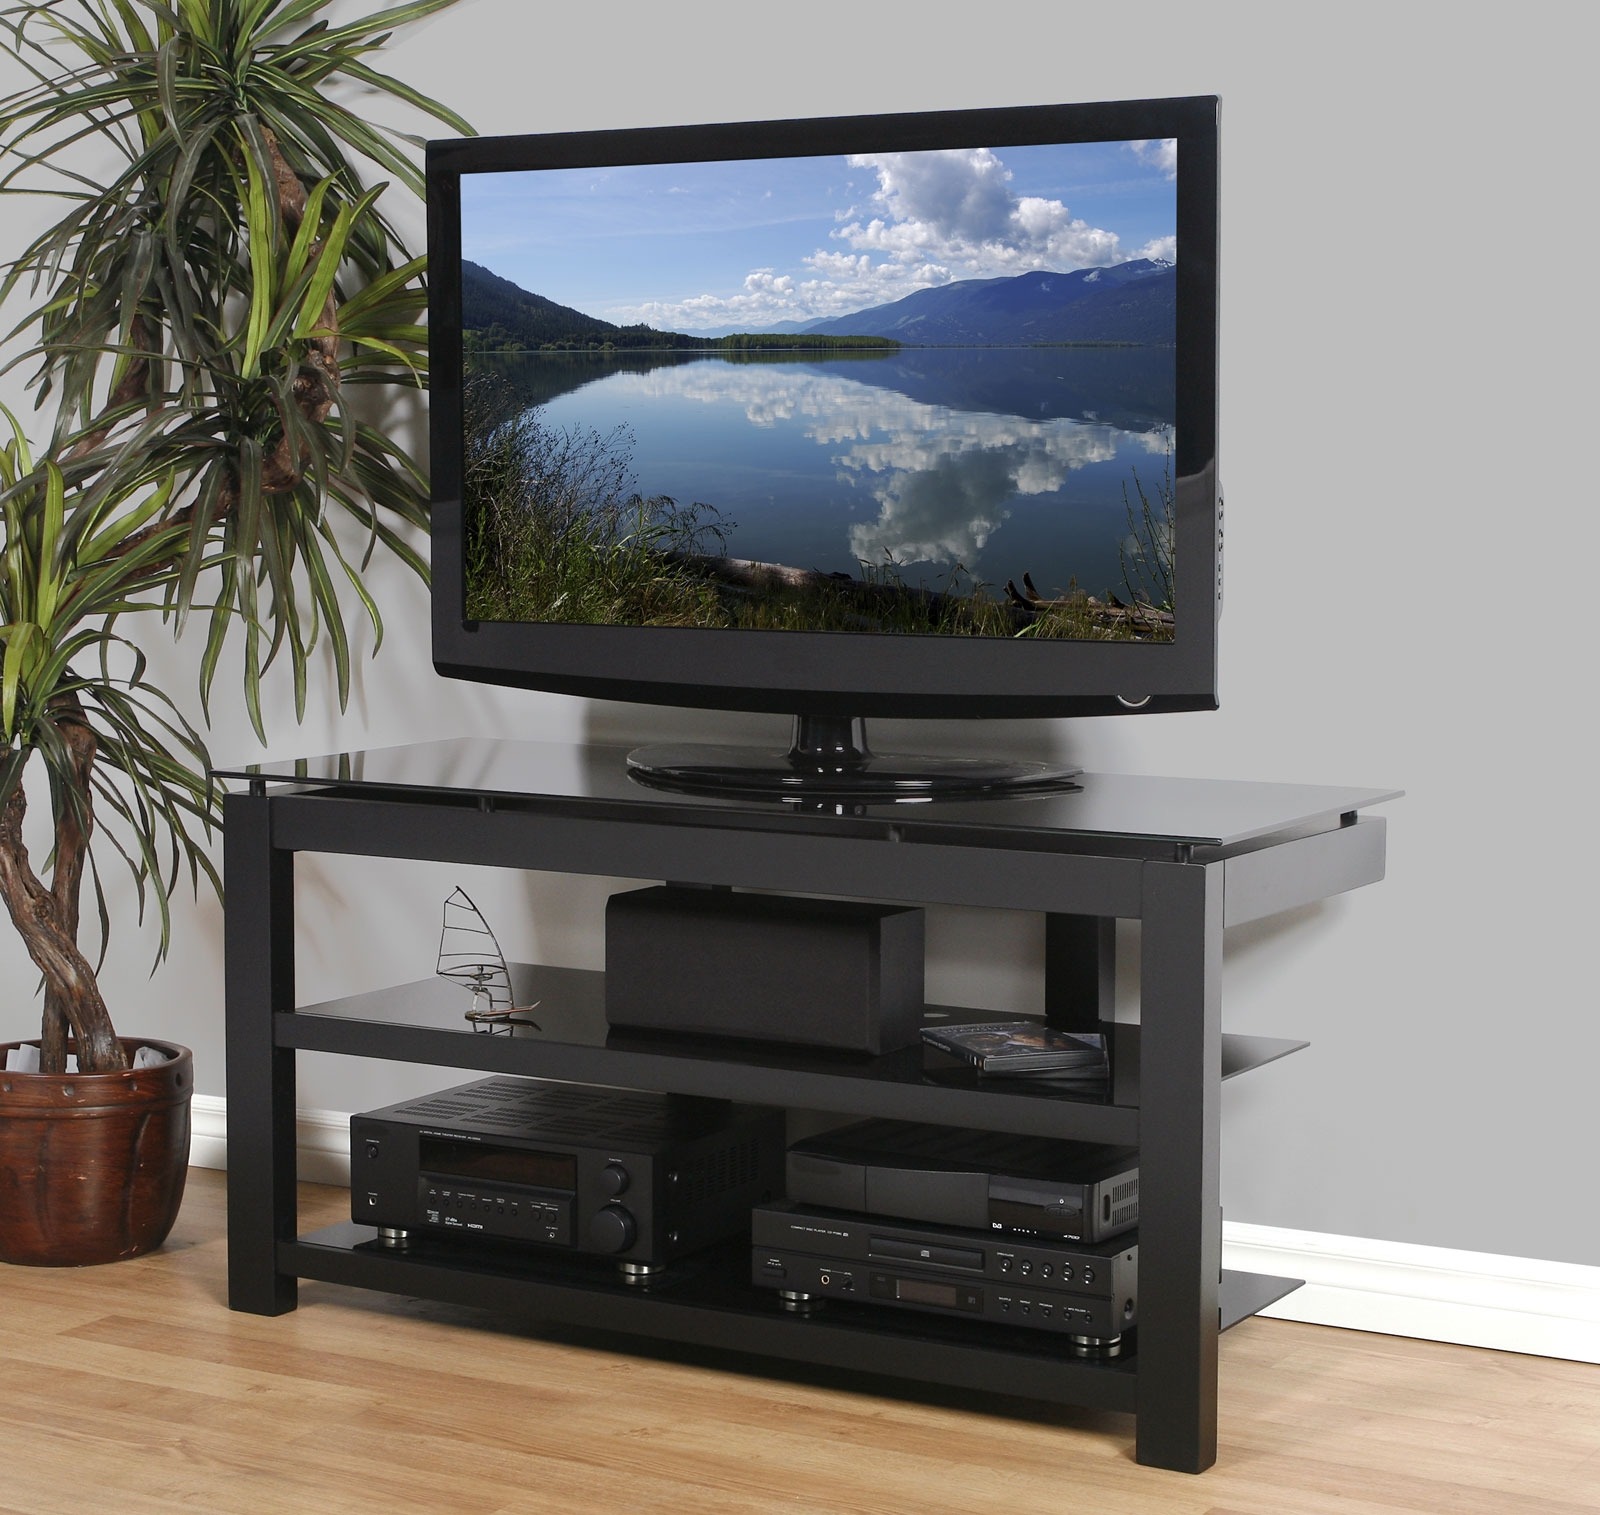 50 Inch Flat Screen Tv Stand Natural Wood Veneers And Black Throughout Flat Screen Shelving (#1 of 15)